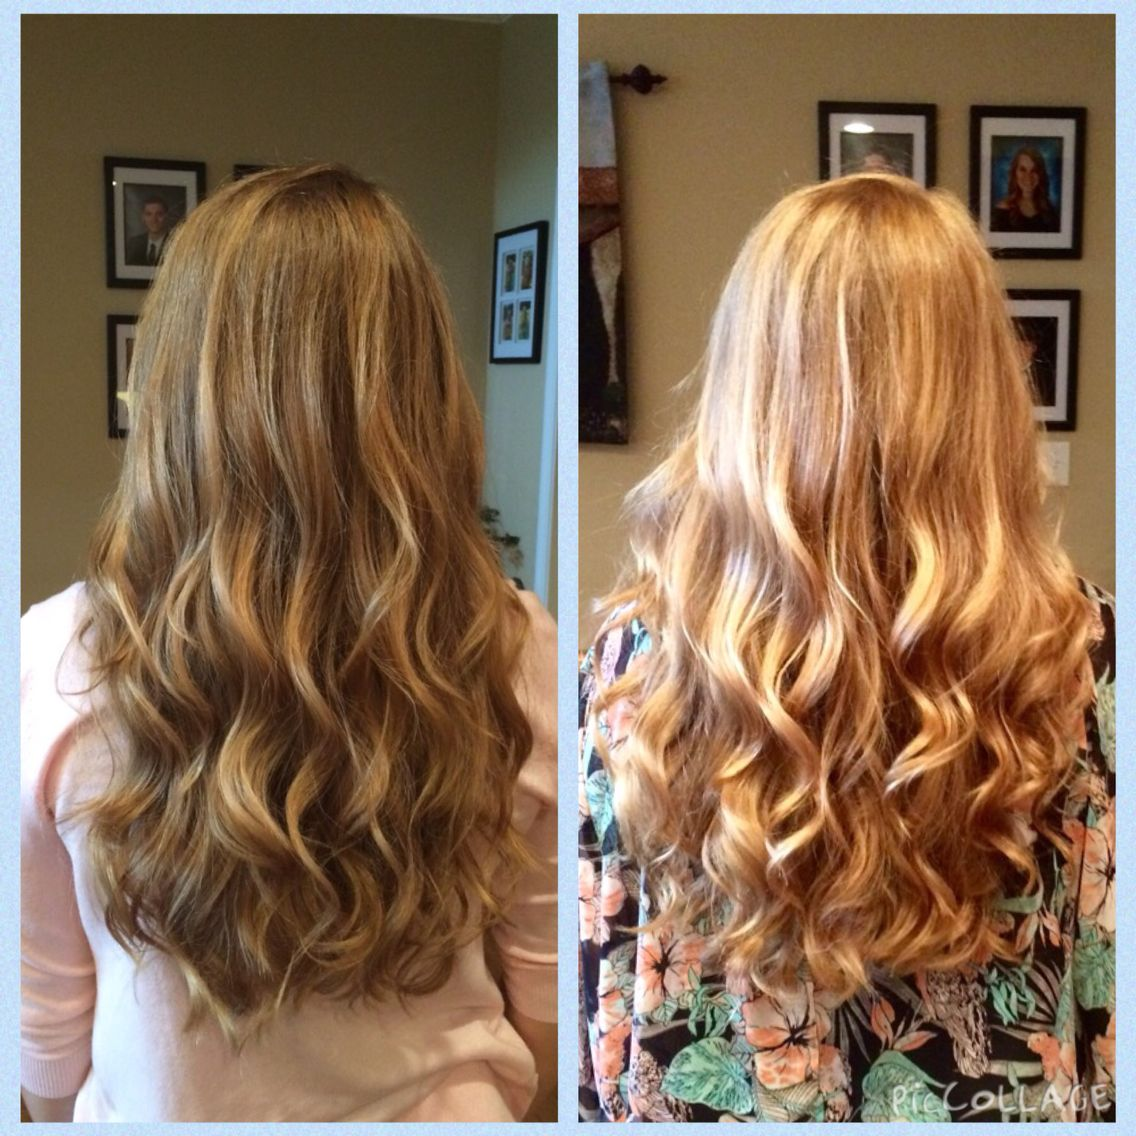 Sun In Really Works This Is A Before And After Of Just A Week Of Usage With A Blow Dryer I Would Not Rec How To Lighten Hair Lighten Hair Naturally